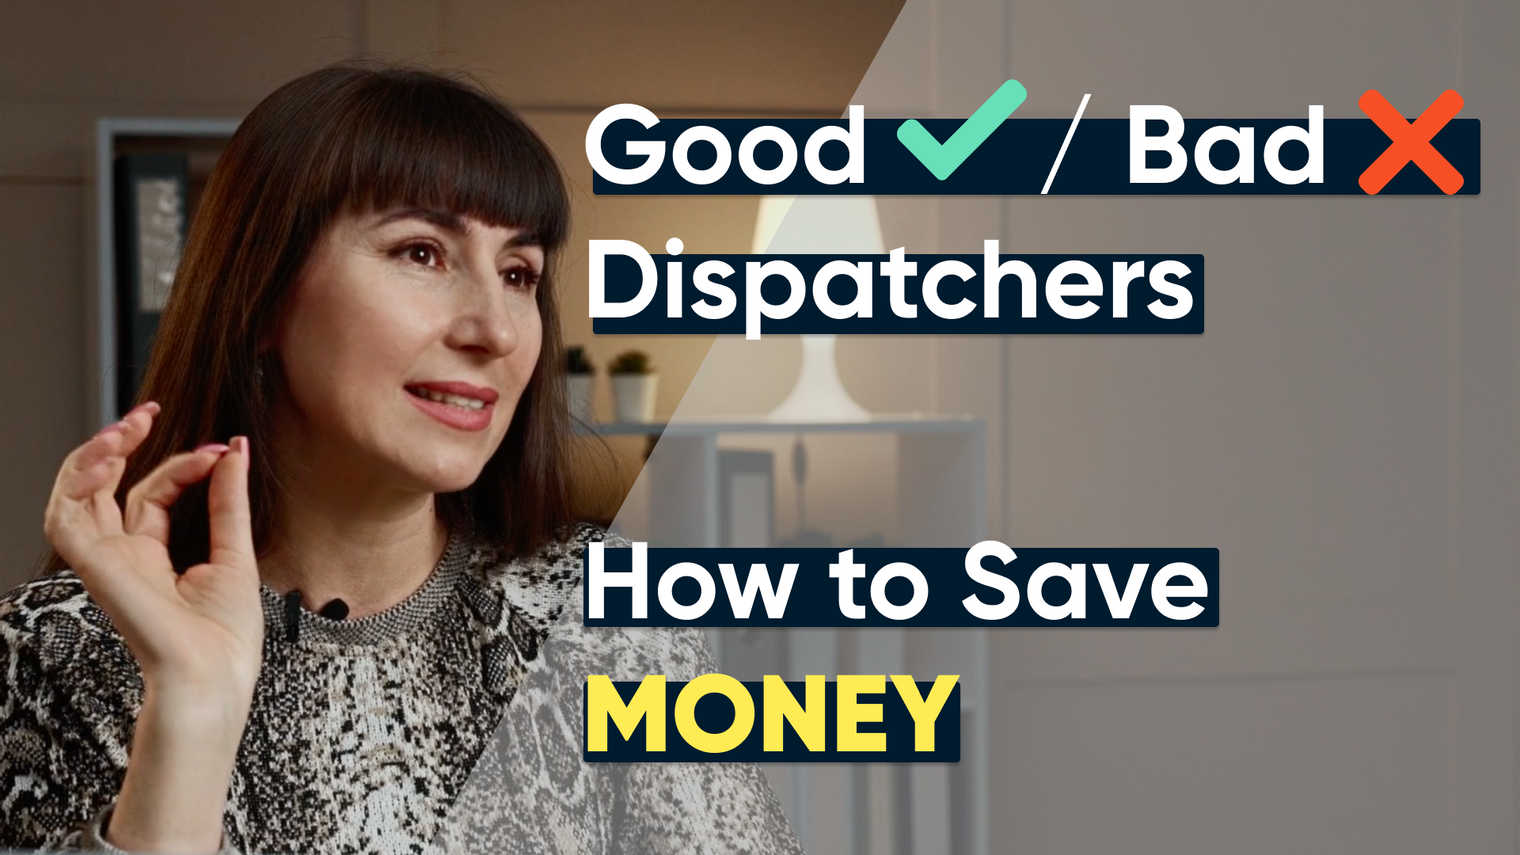 Good dispatchers vs bad dispatchers and how to save money